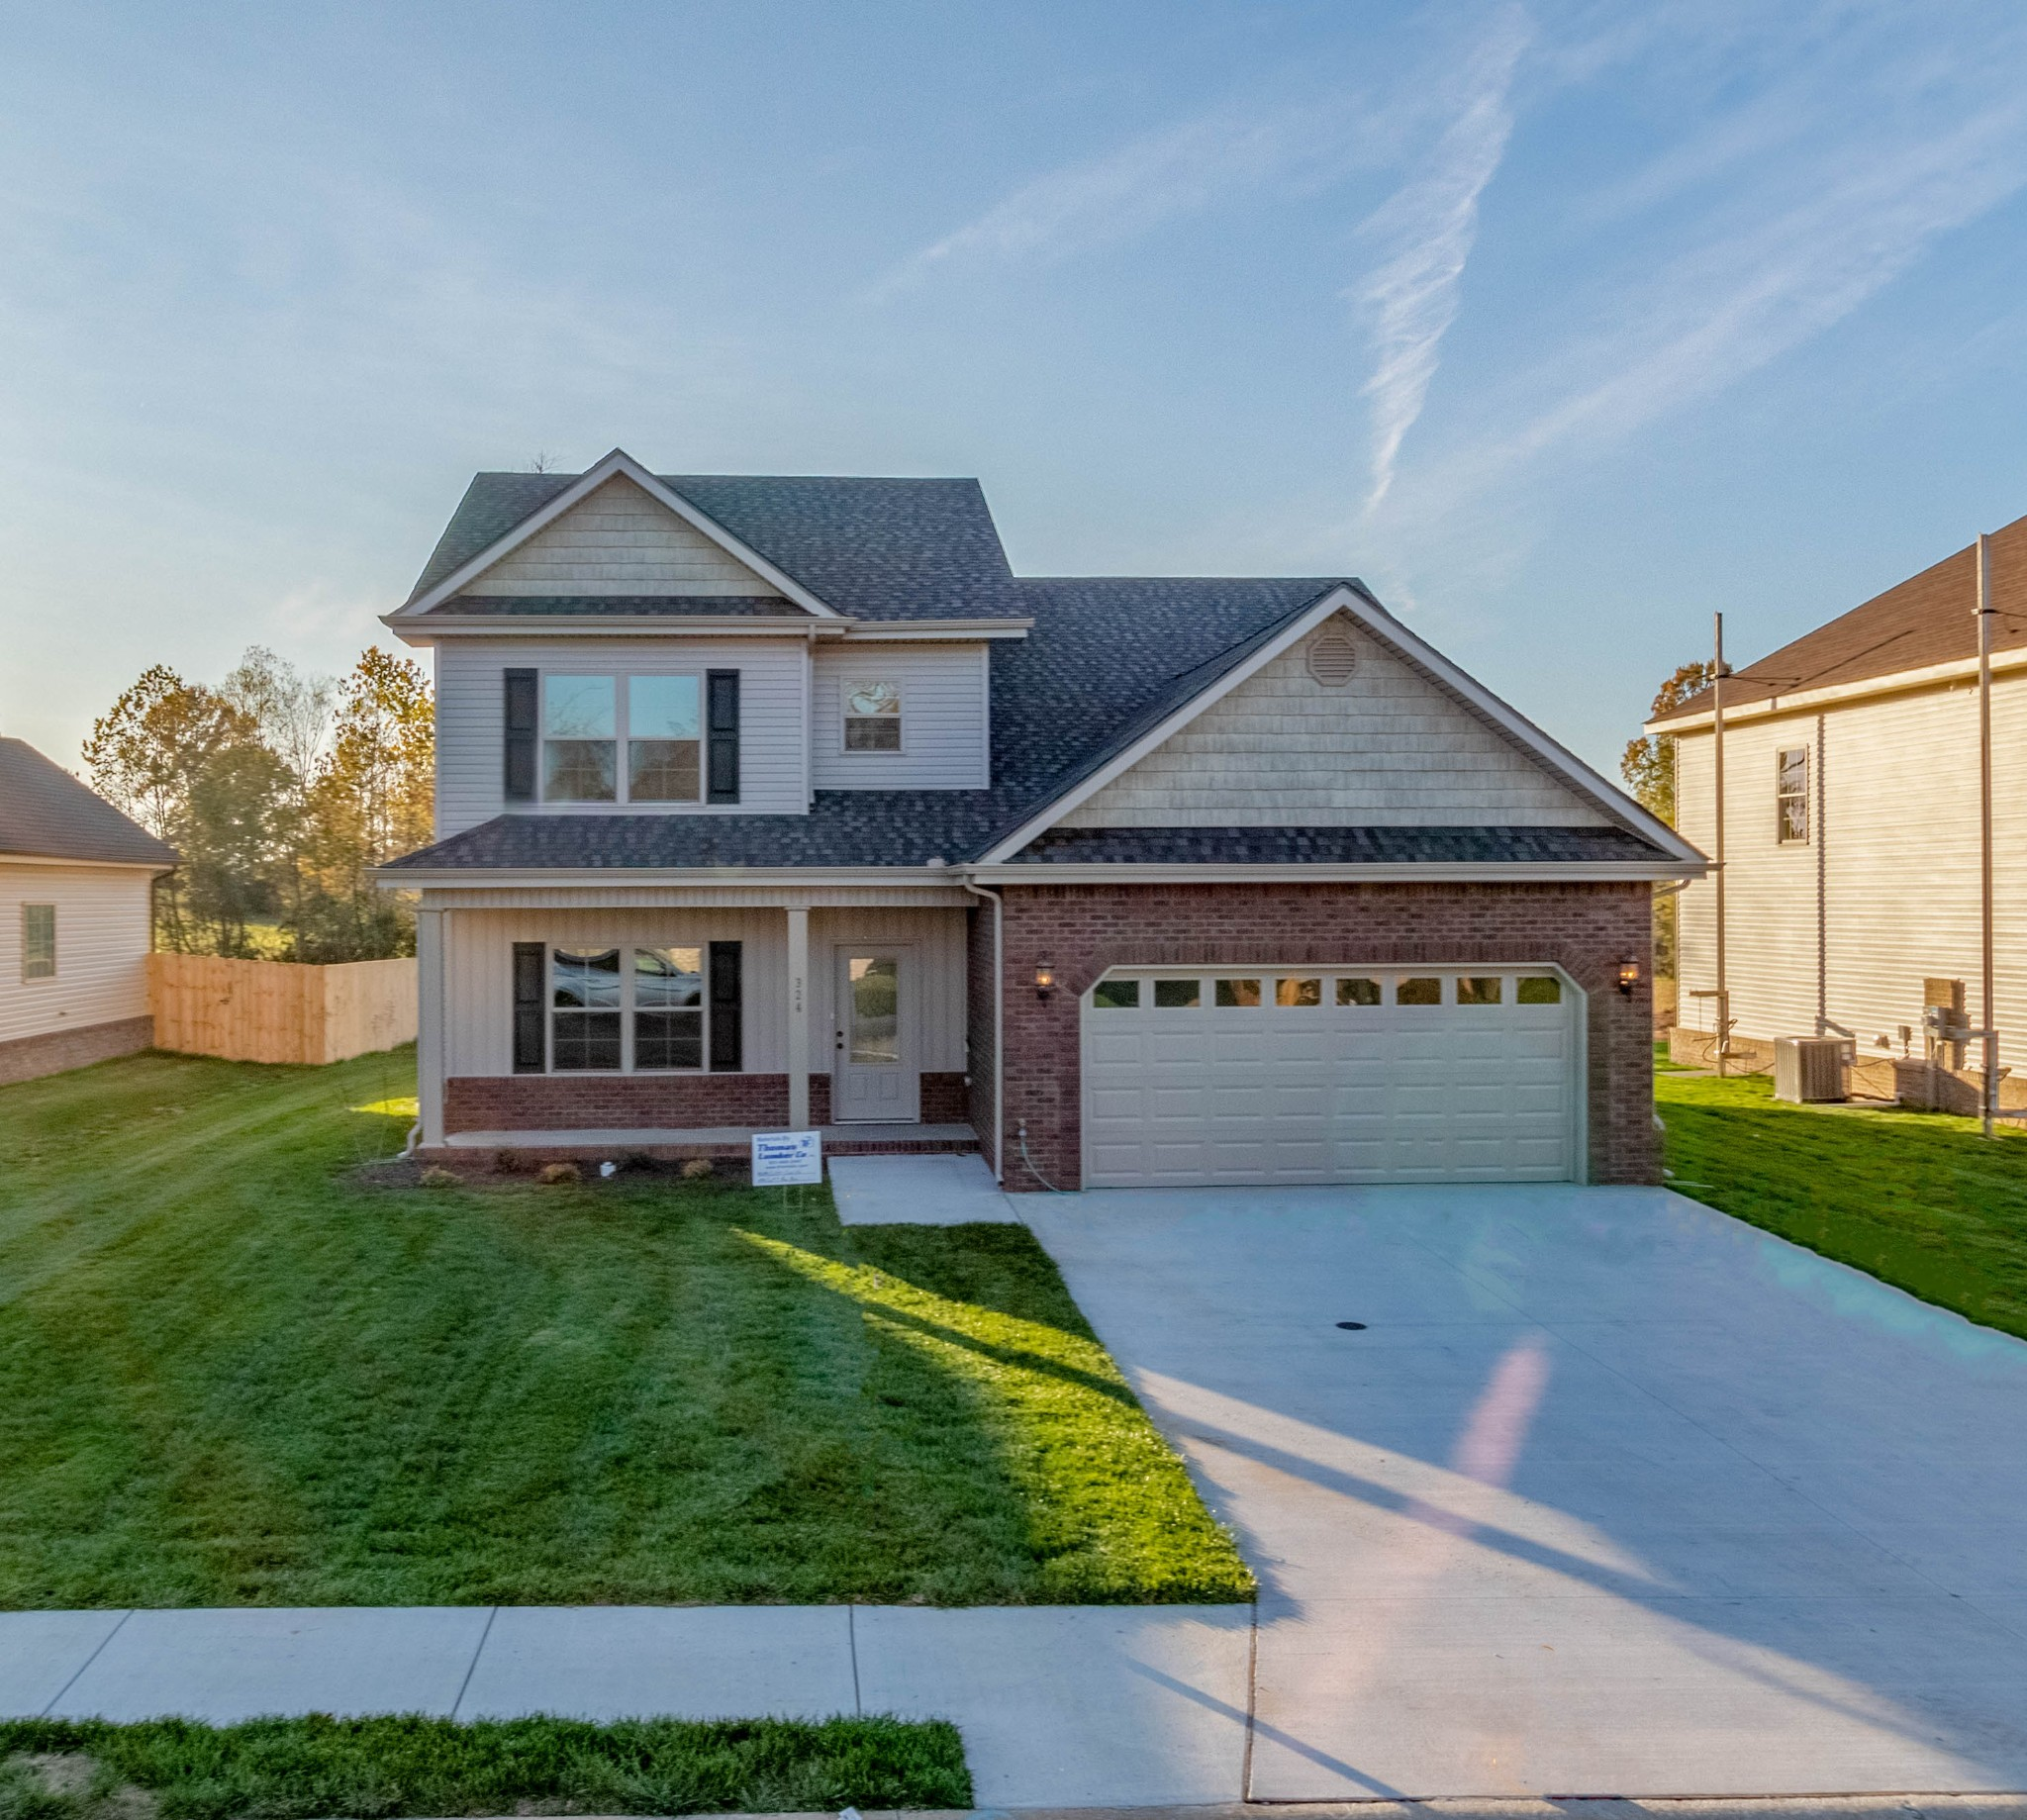 324 Chase Dr, Clarksville, TN 37043 - Clarksville, TN real estate listing